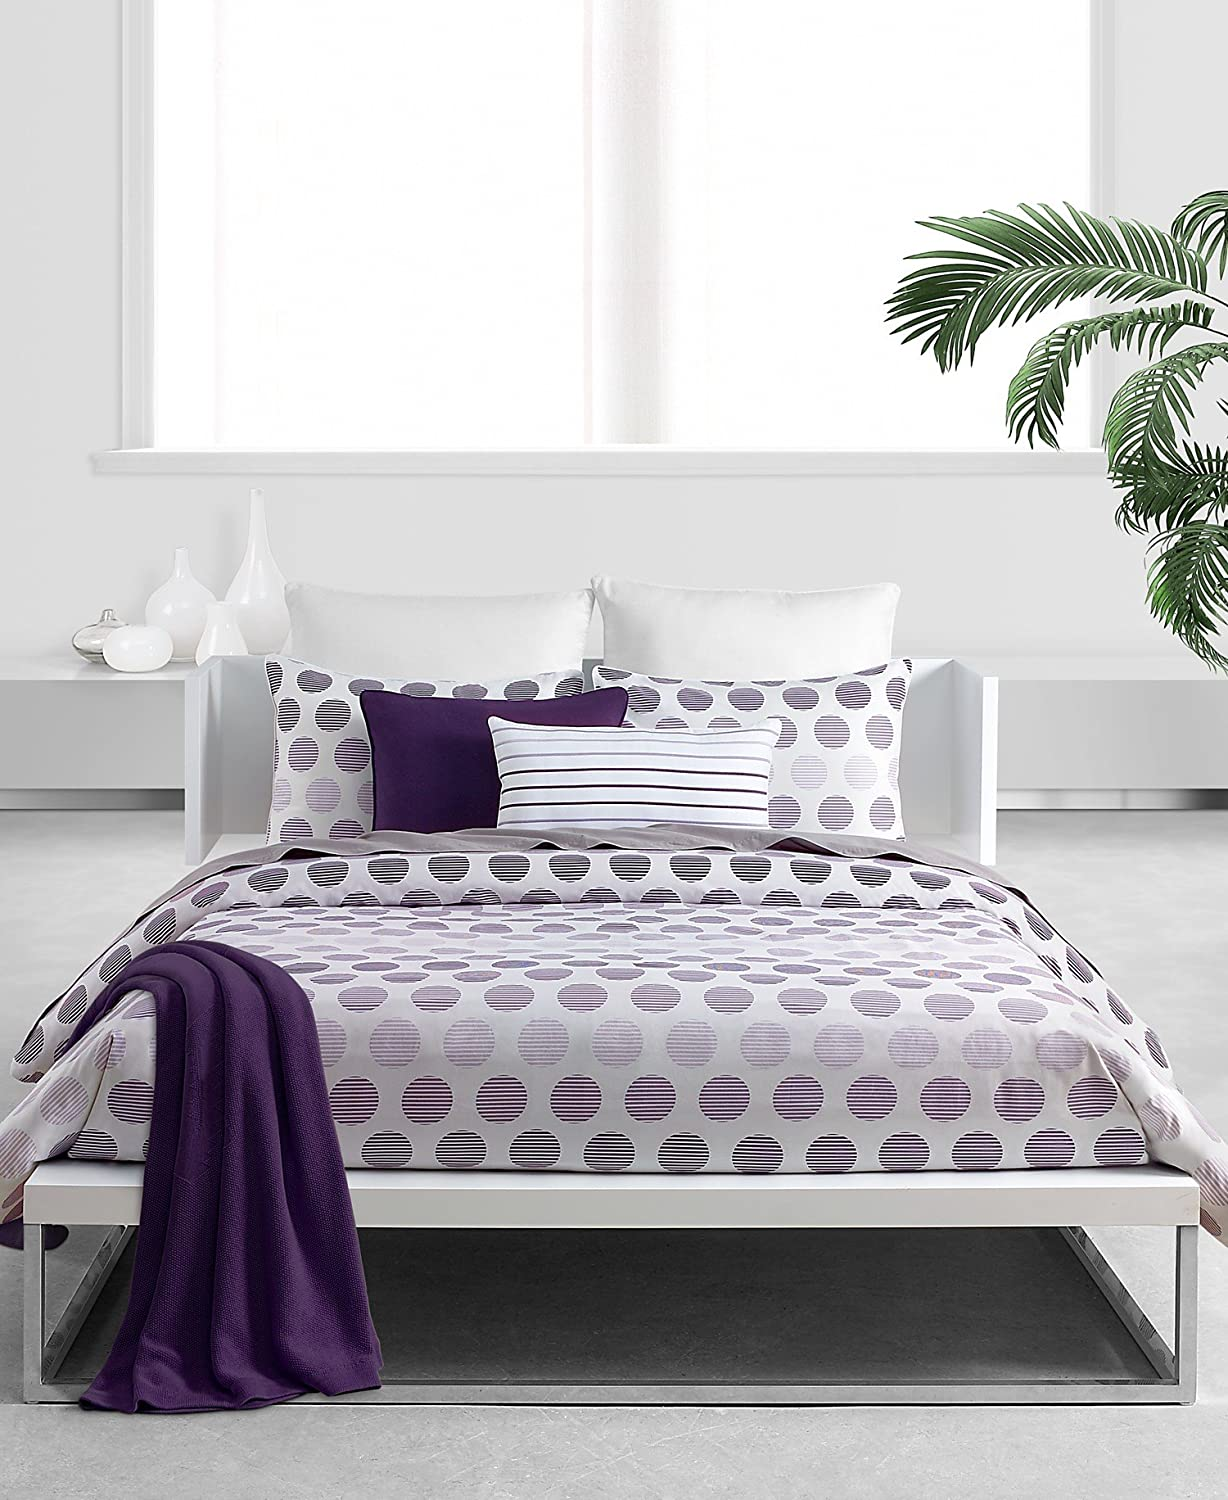 jackson queen and linen pretty hill lacoste sets outfitters fabric size blue best marshalls bedroom comforter video bedding clipart nursery michael garnet duvets of cute duvet lilly urban full sheet pulitzer bedspreads sippin insert comforters blanket trippin cover set white